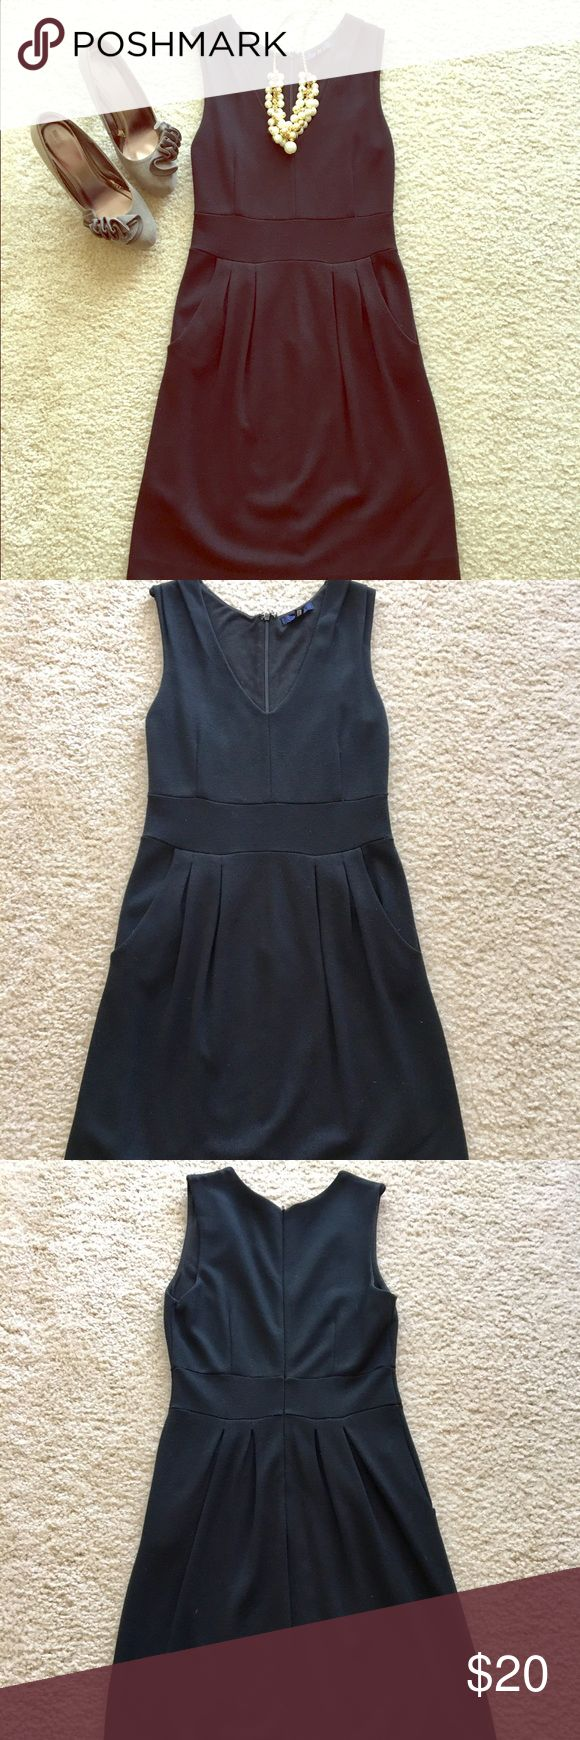 """Little black dress V-neck black mini dress. Thicker, form fitting material with some stretch (74% Rayon, 22% Nylon, 4% Spandex). Very flattering. Has pockets! Perfect for the office. Worn a handful of times. My office is pretty casual so I just don't have the opportunity to wear this dress anymore. I am 5'4"""" and it hits just above my knee. EUC! GAP Dresses Mini"""